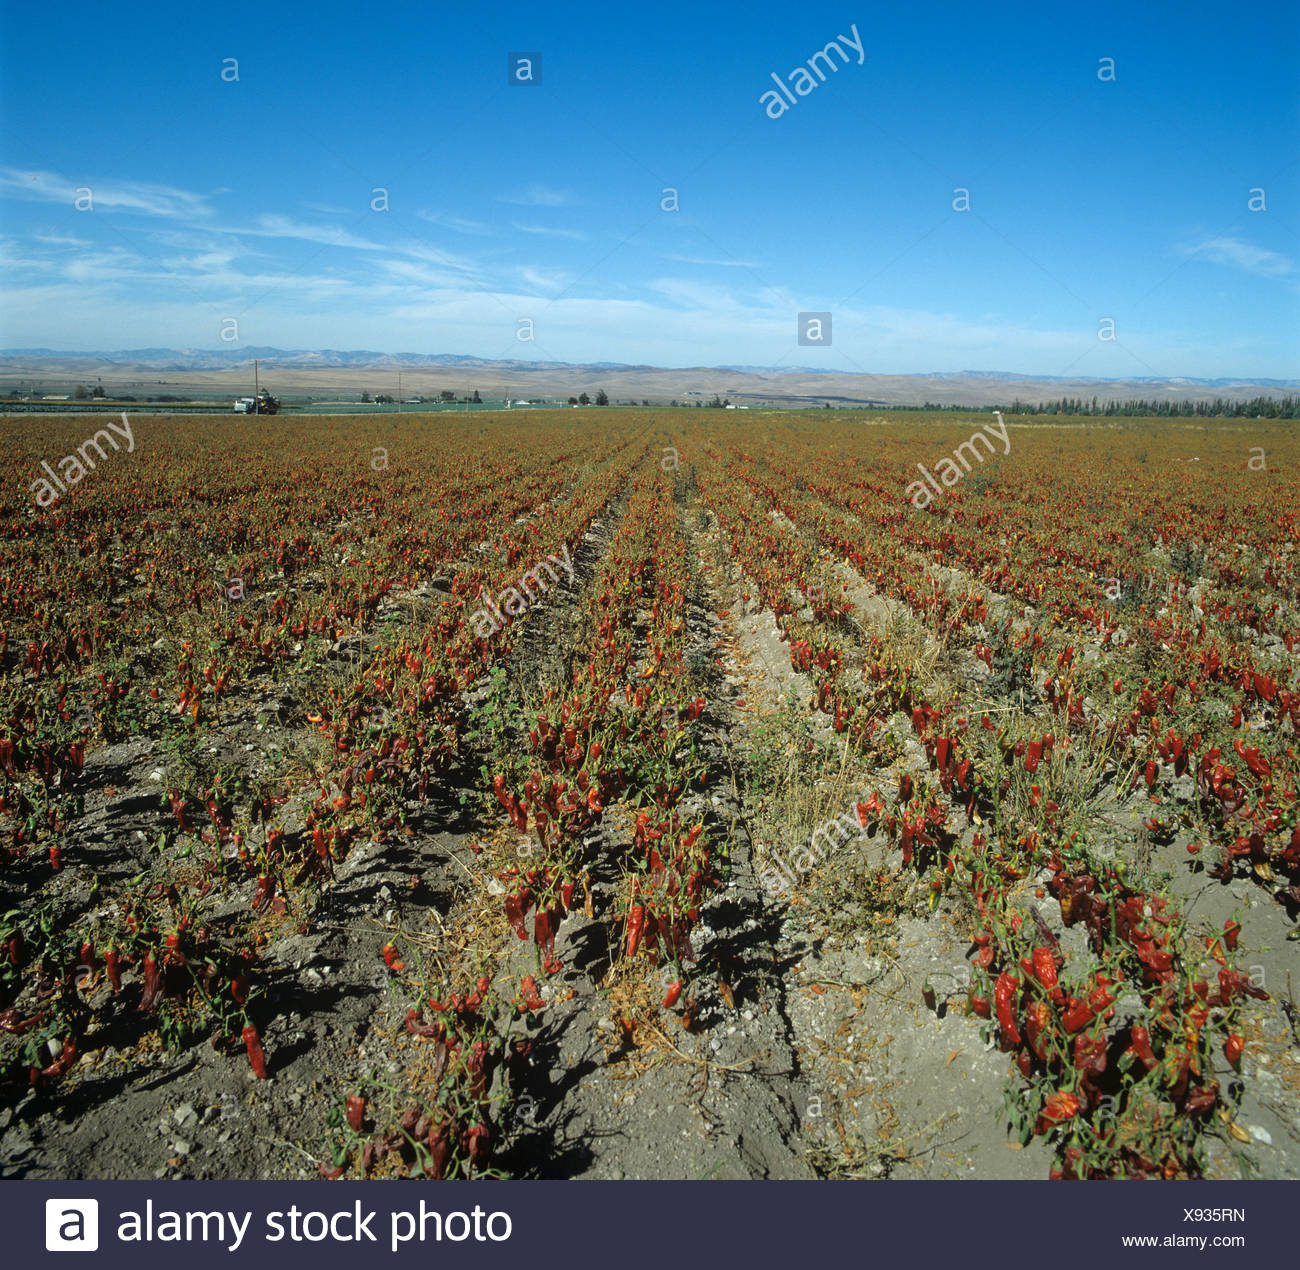 Sweet pepper crop in mature fruit sun drying California USA - Stock Image